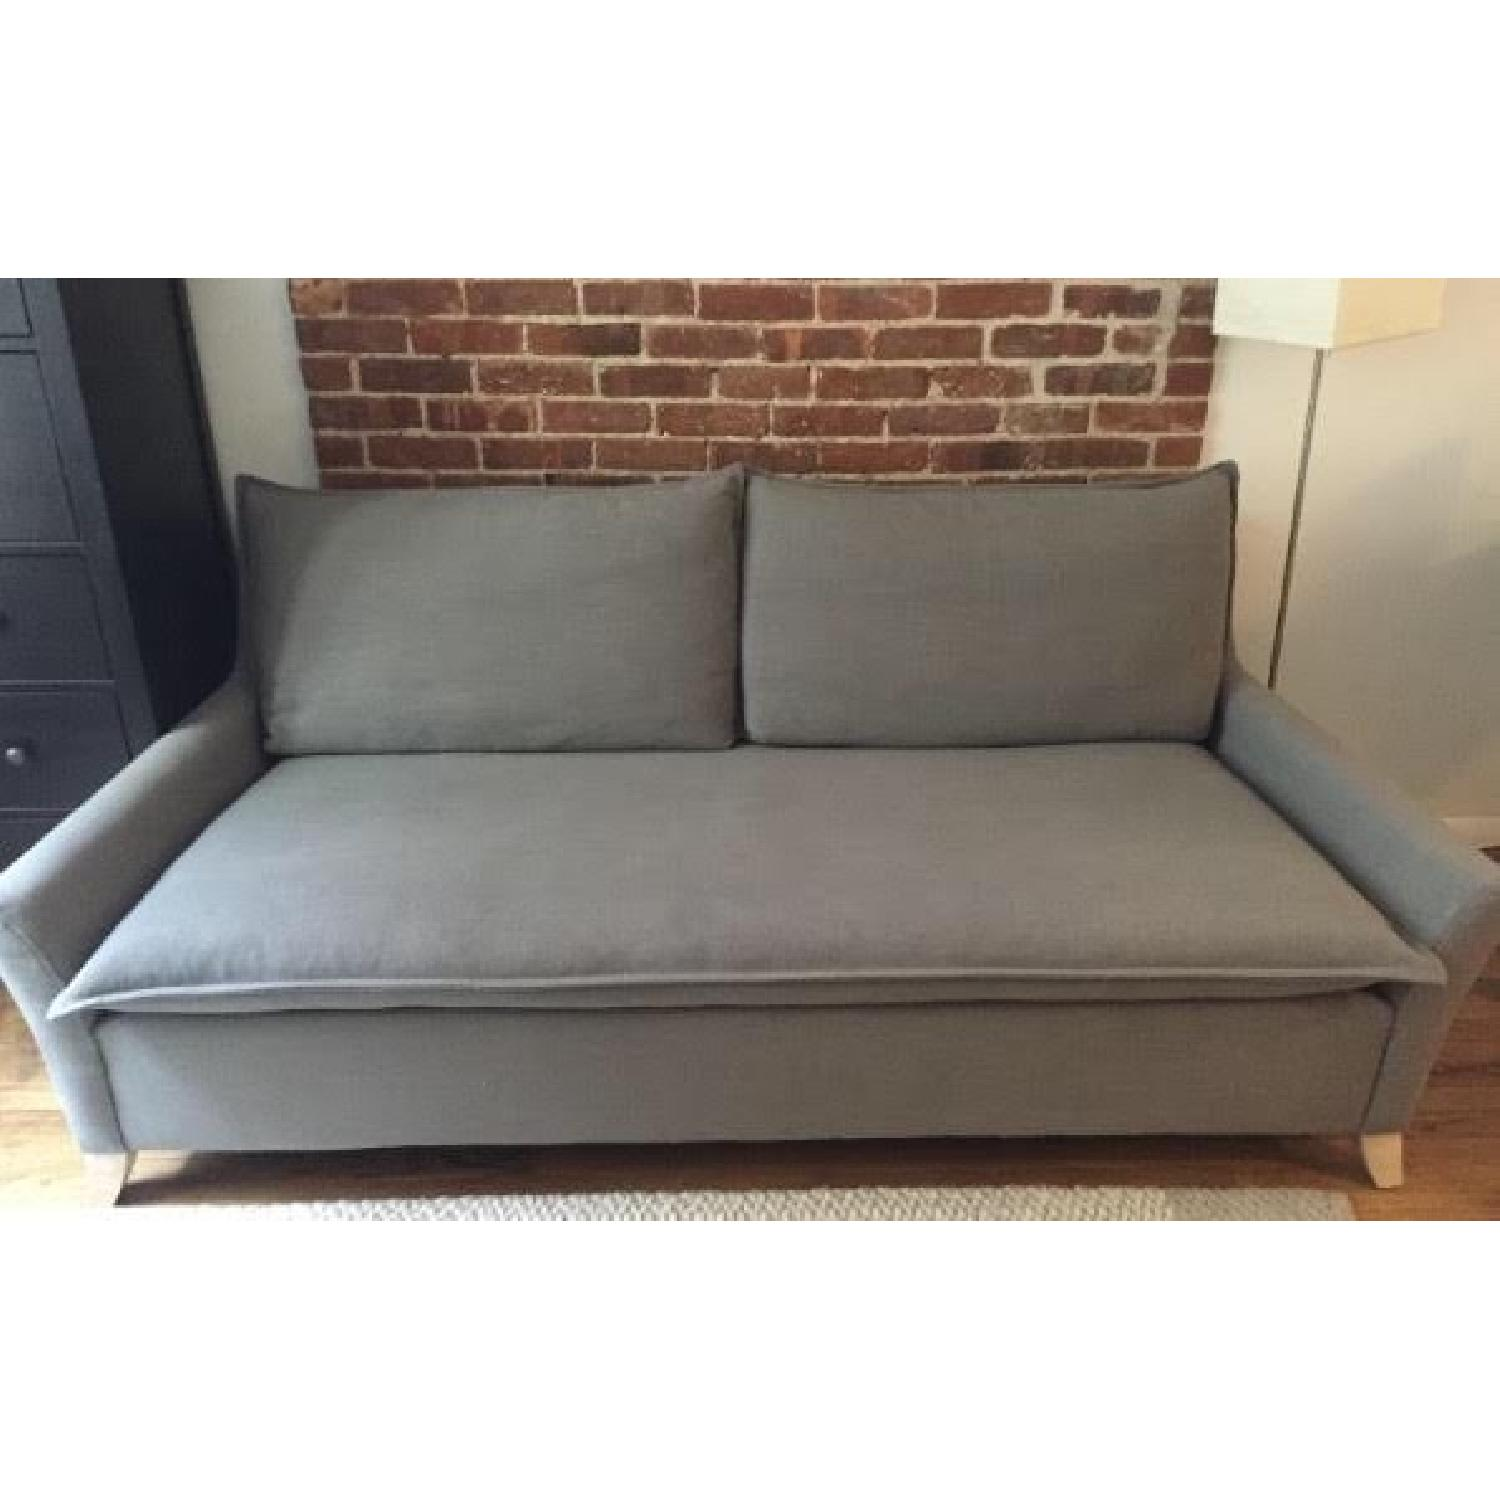 West Elm Bliss Down-Filled Sofa - image-3